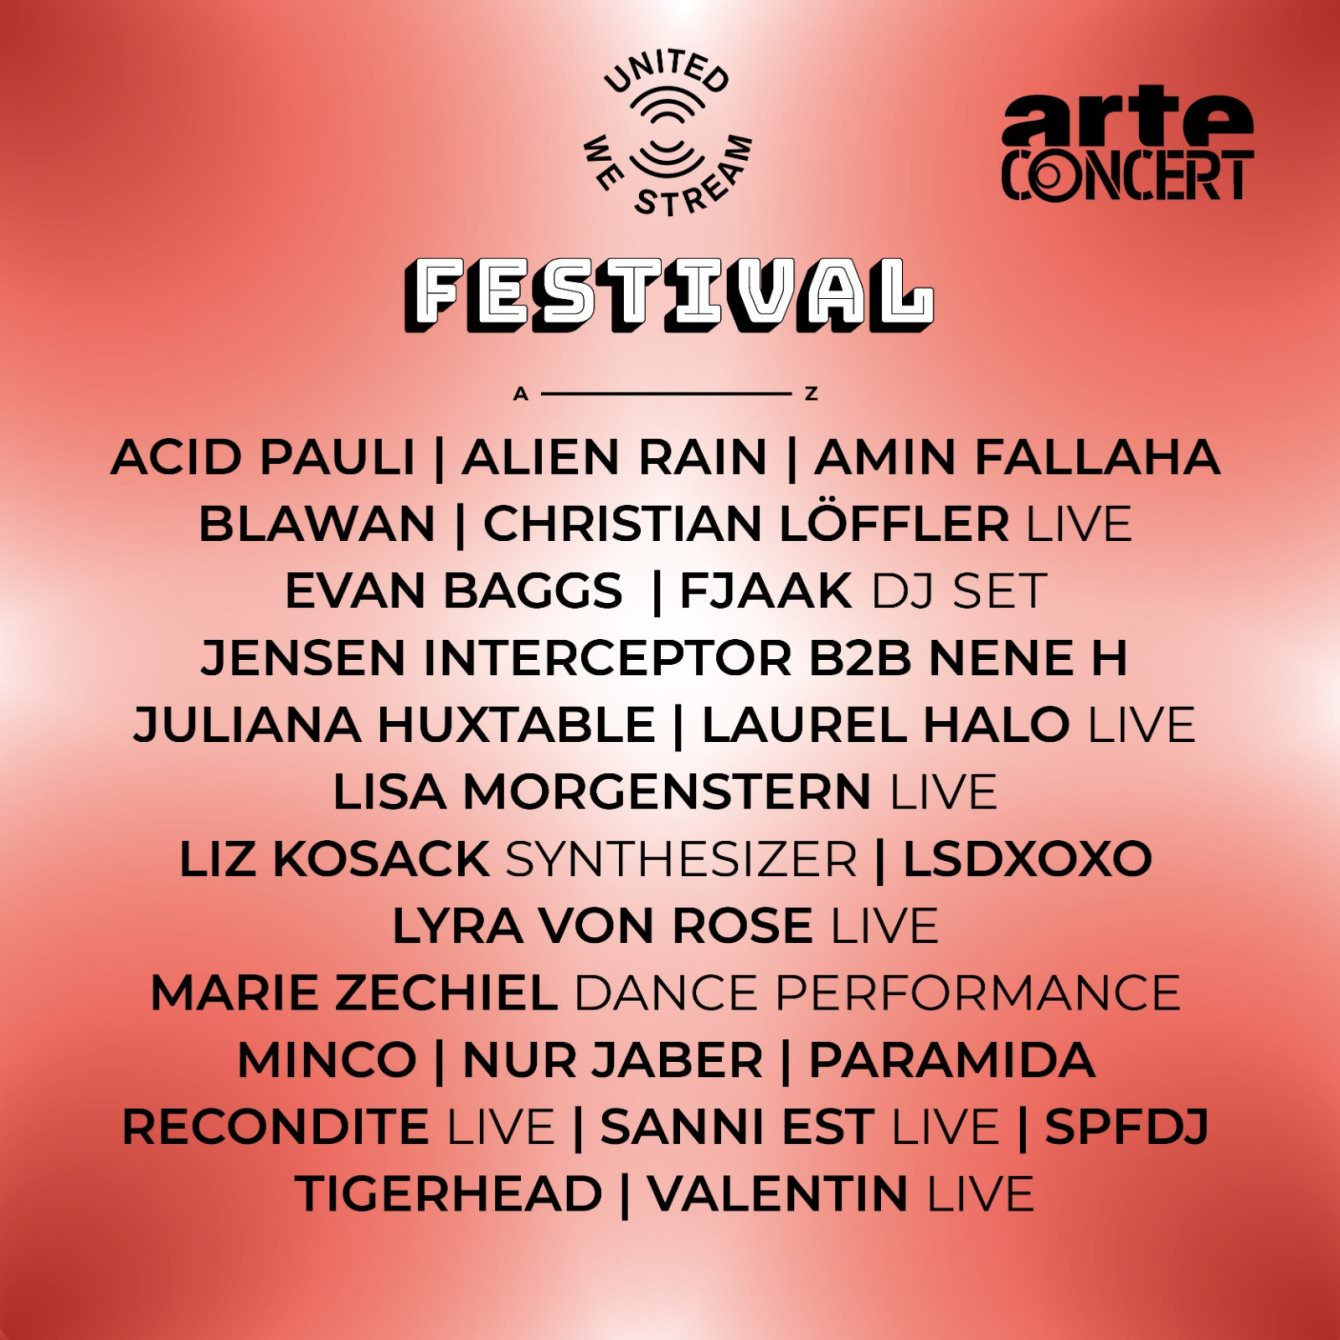 United We Stream Festival - Day 2 - Flyer front